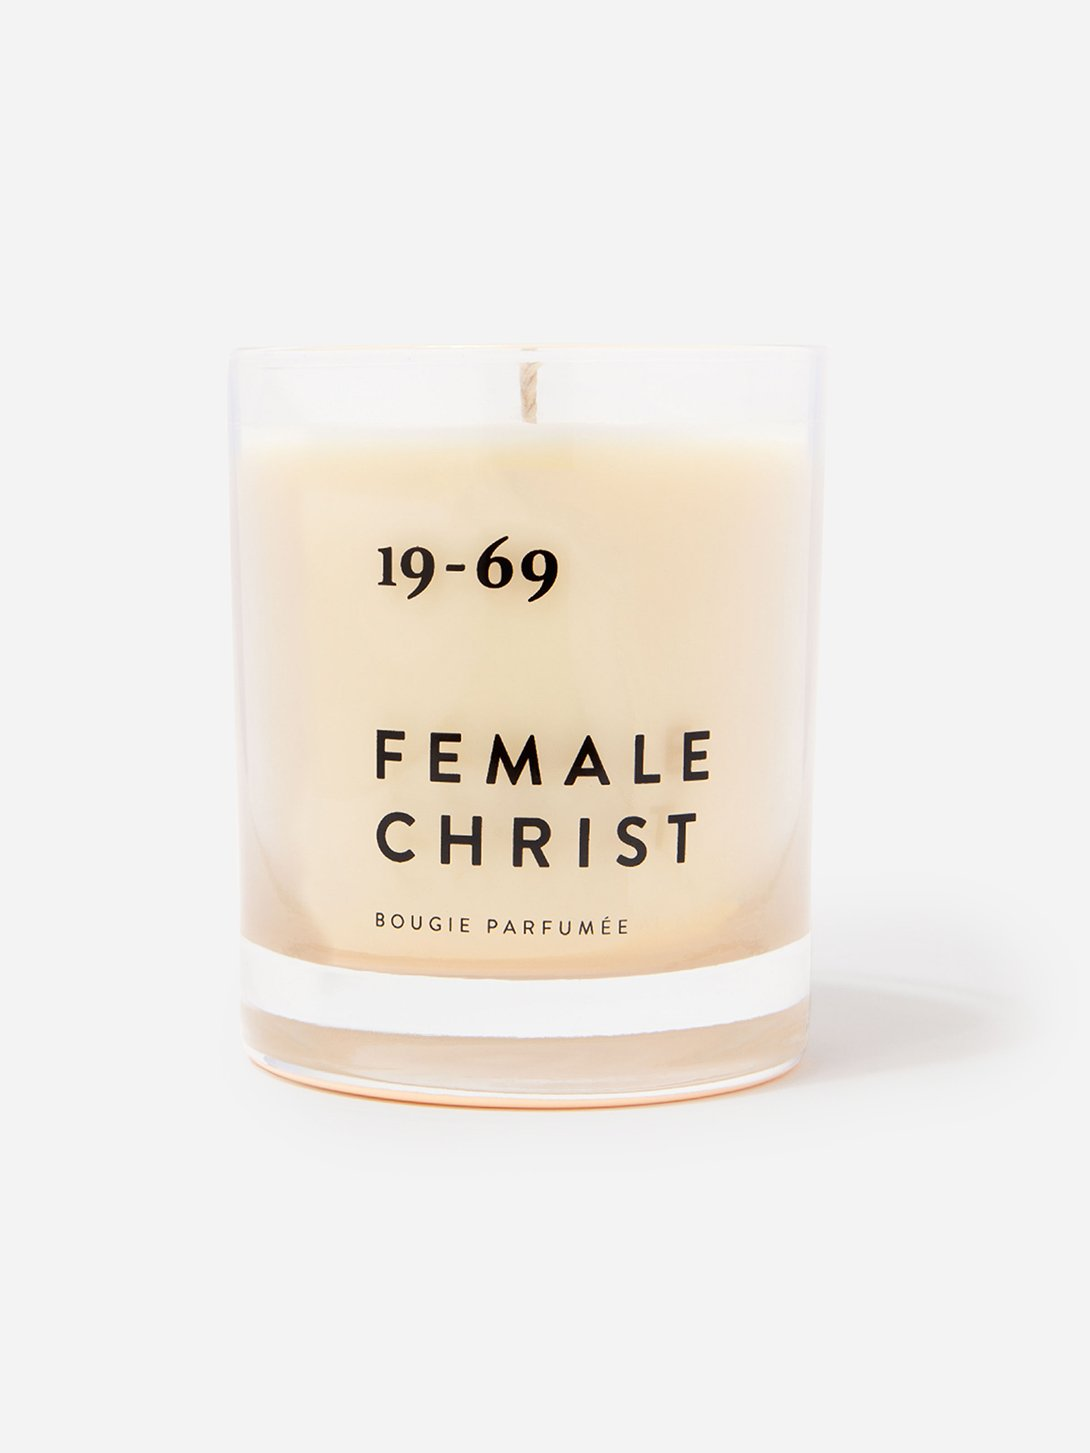 FEMALE CHRIST candle for men and women unisex female christ 200ml 19-69